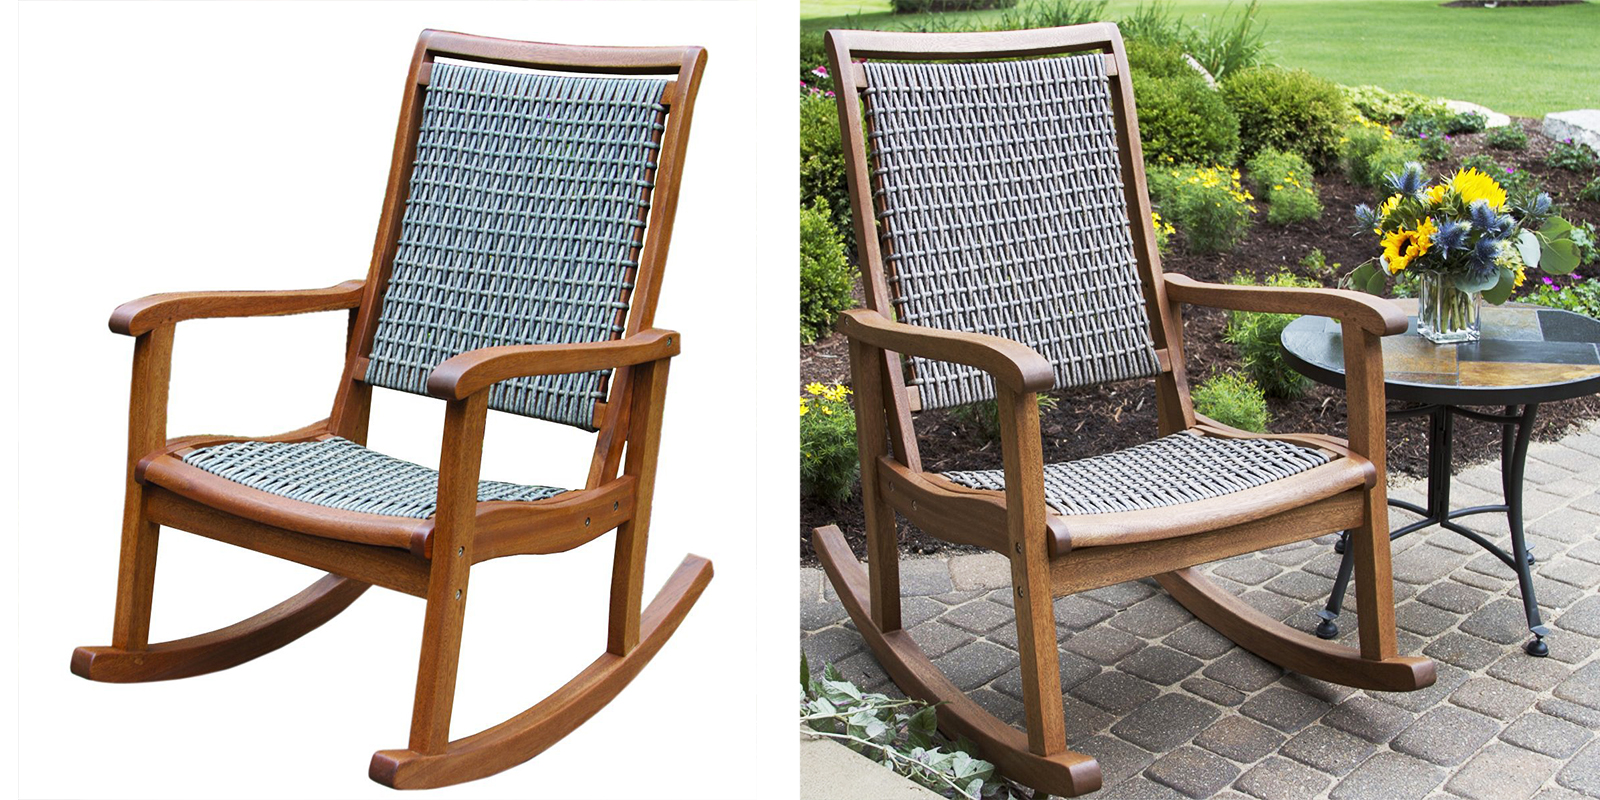 Patio Chair - Resin Wicker and Eucalyptus Rocking Chair